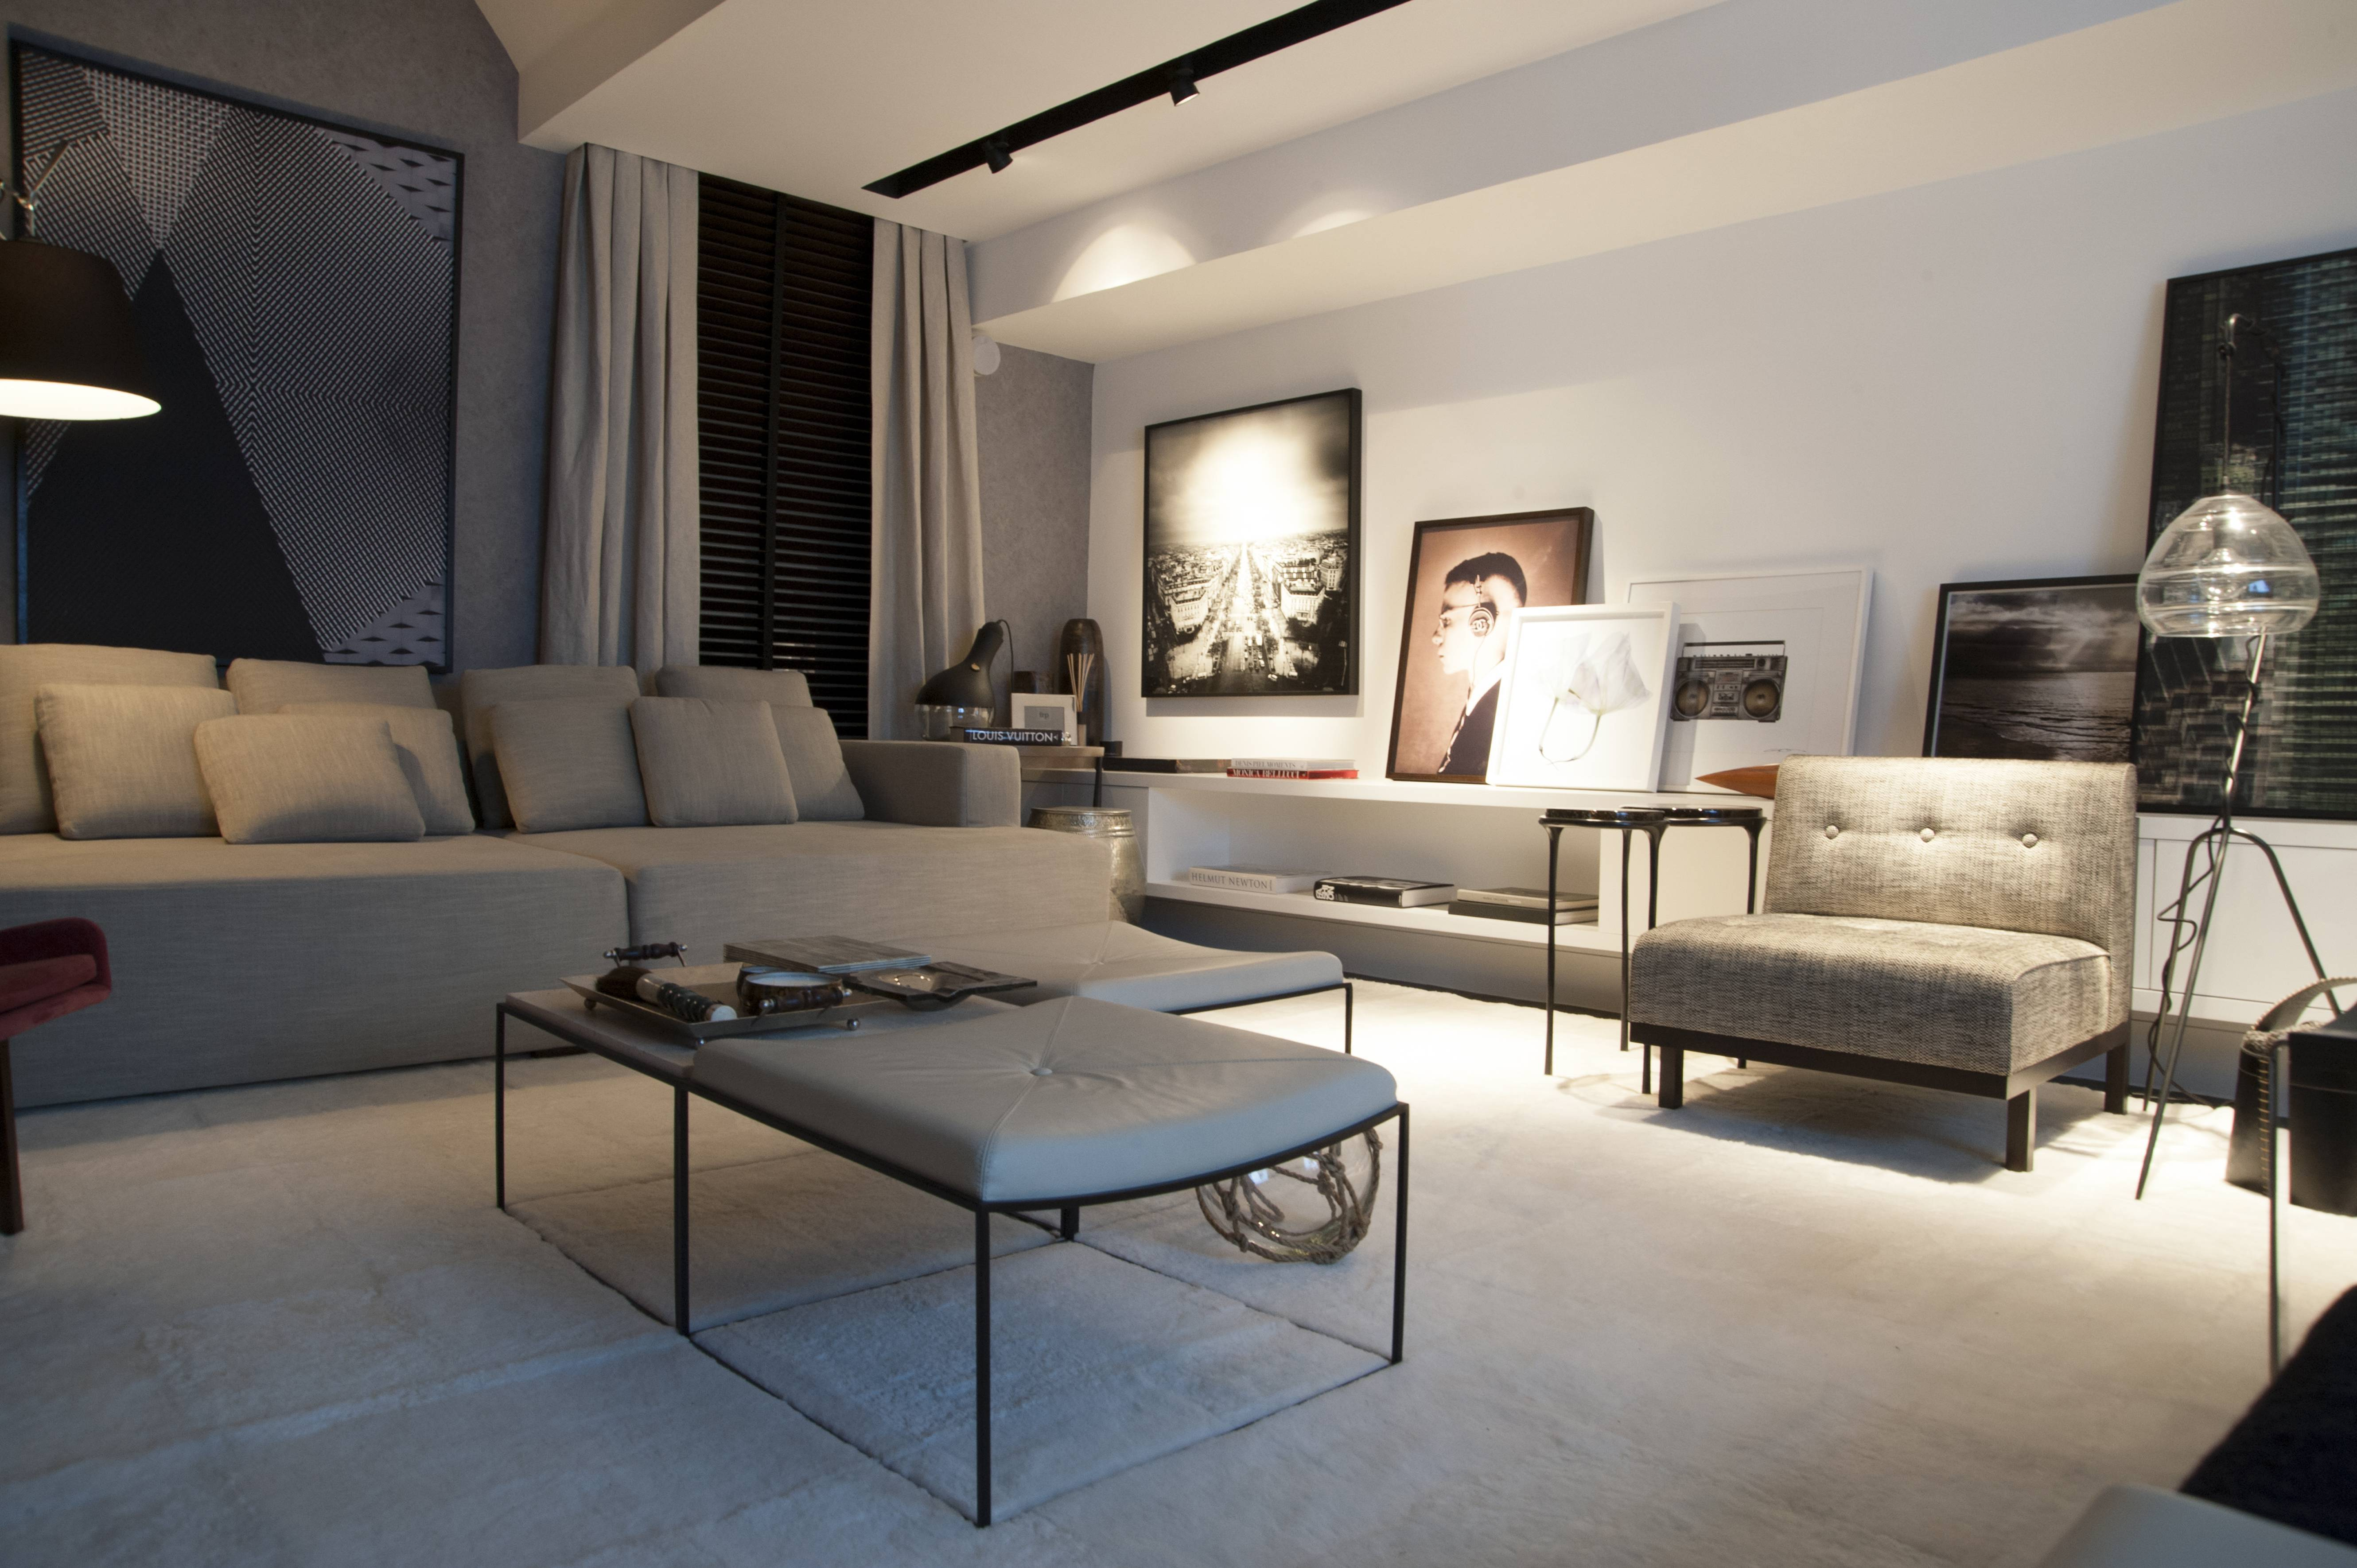 casa cor 2014 ambiente home theater francisca reis. Black Bedroom Furniture Sets. Home Design Ideas